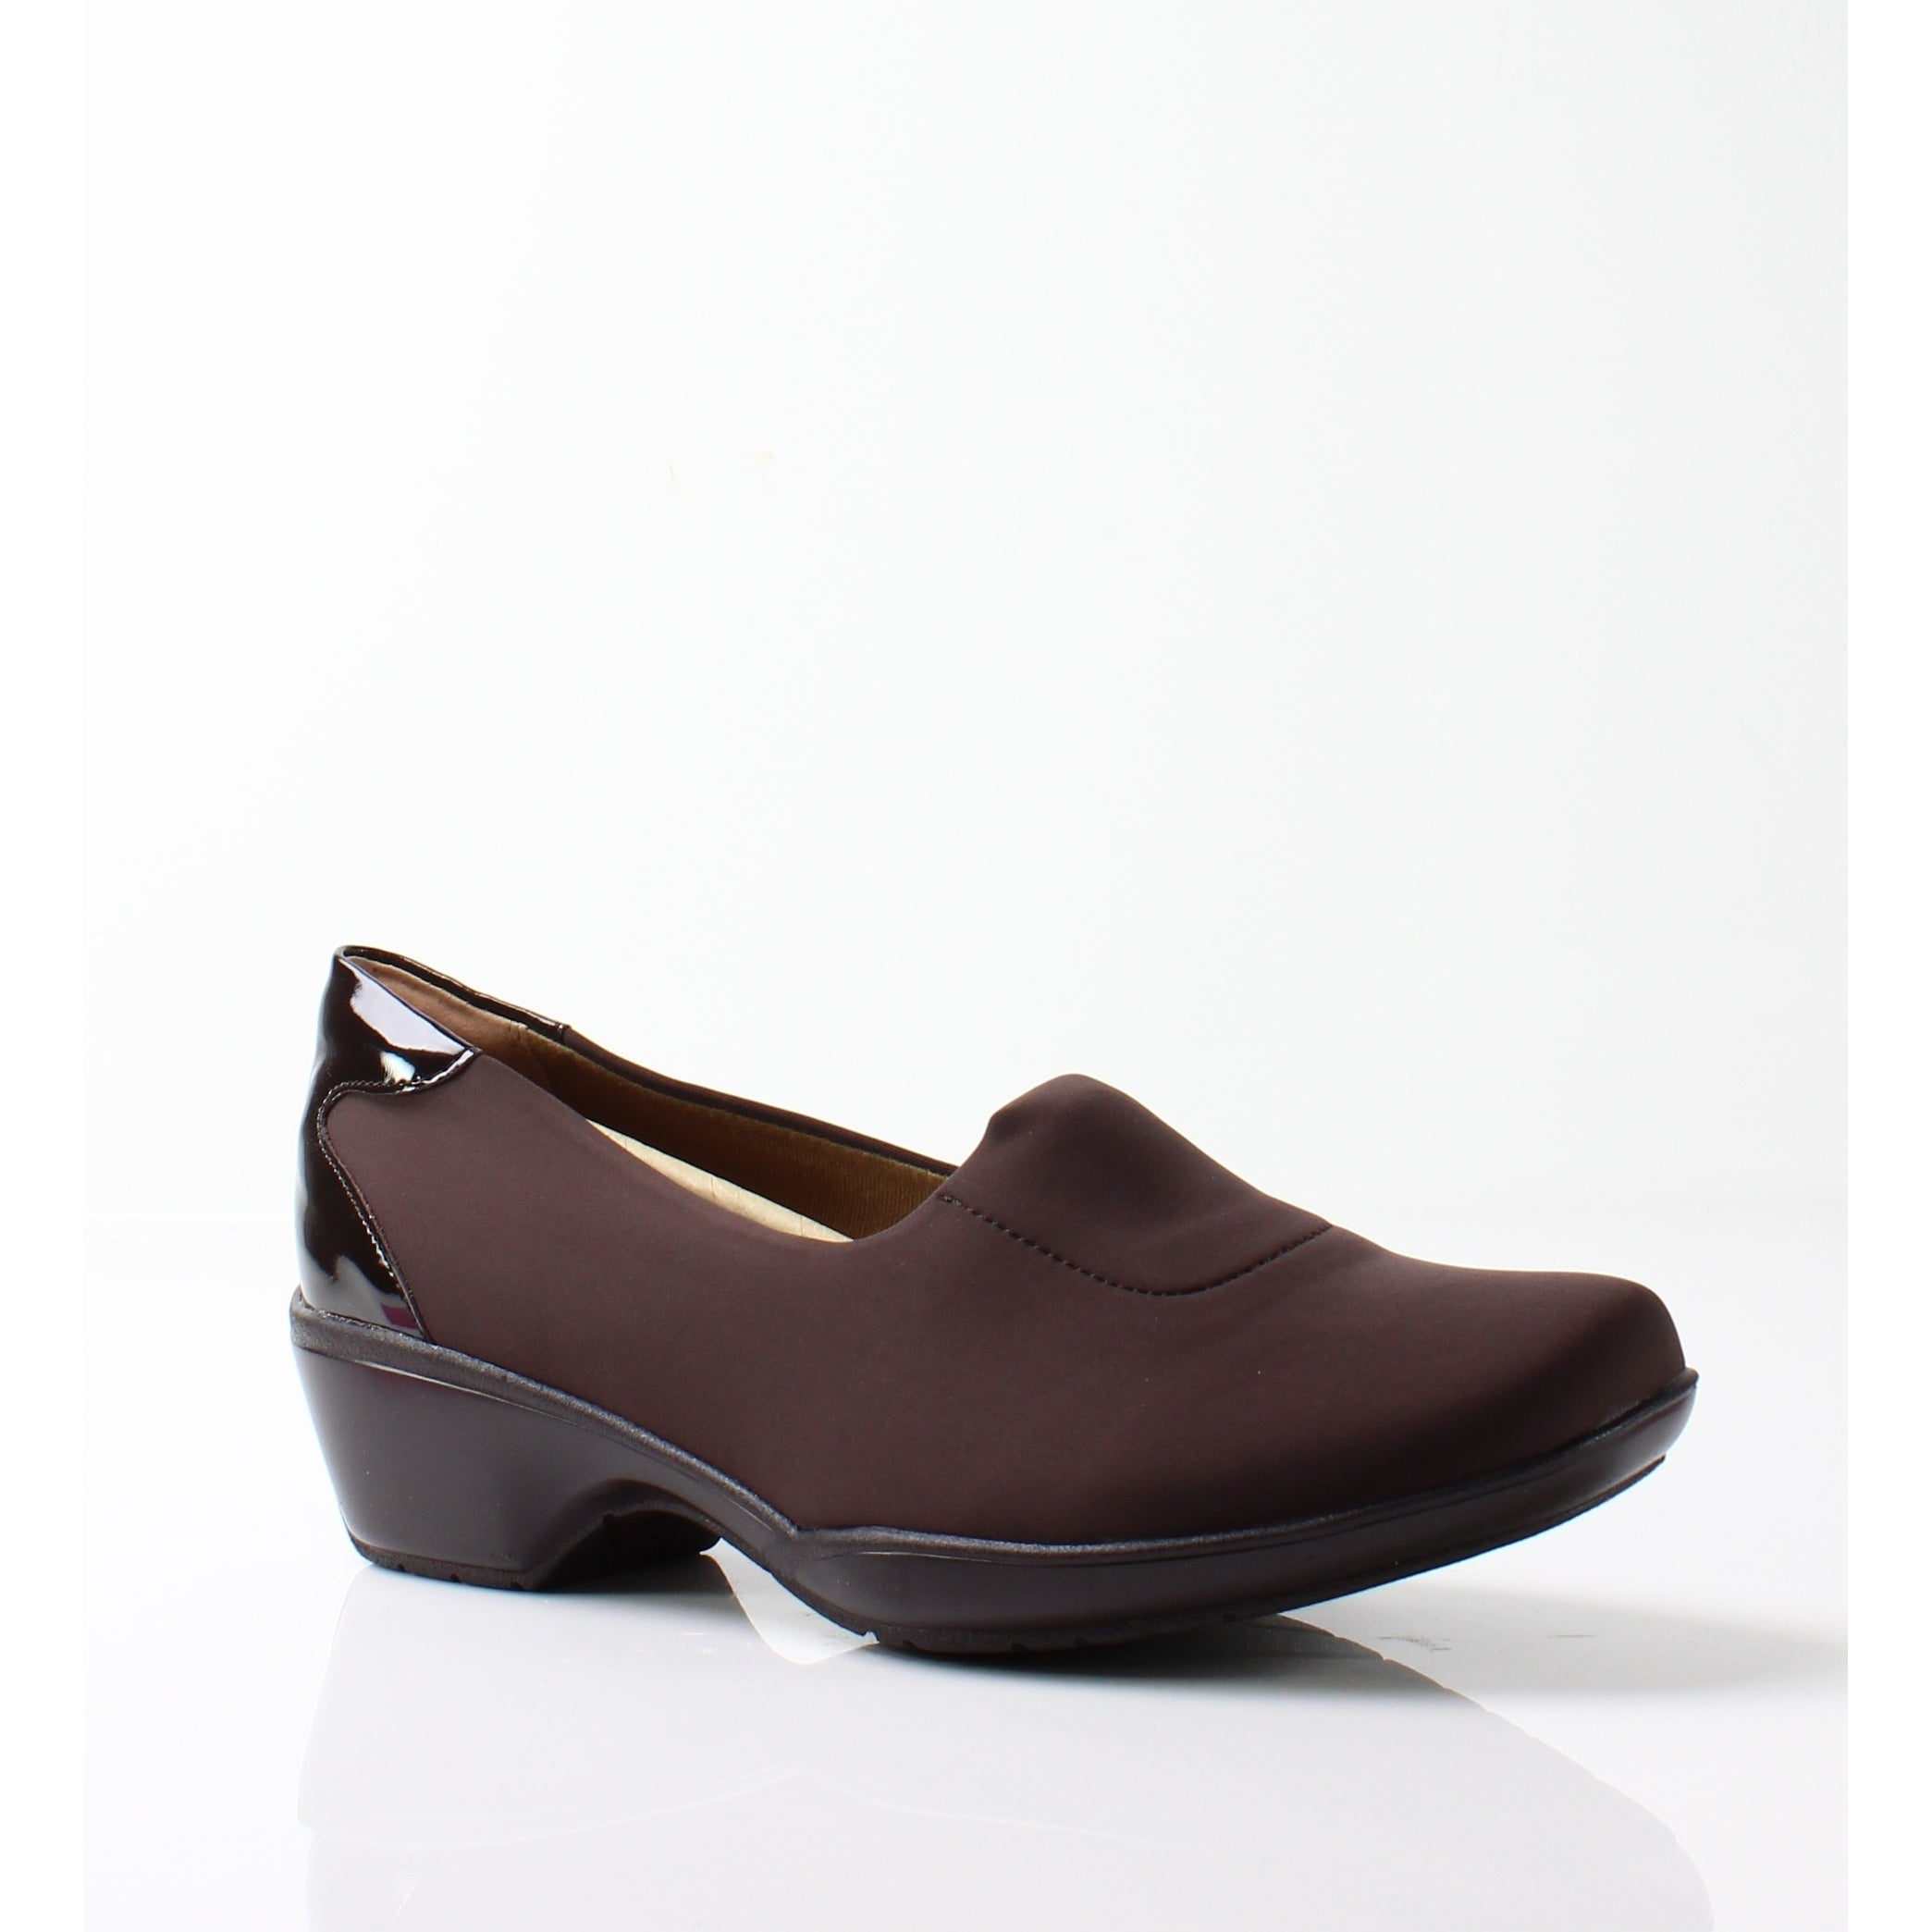 Softspots NEW Brown Women's Shoes